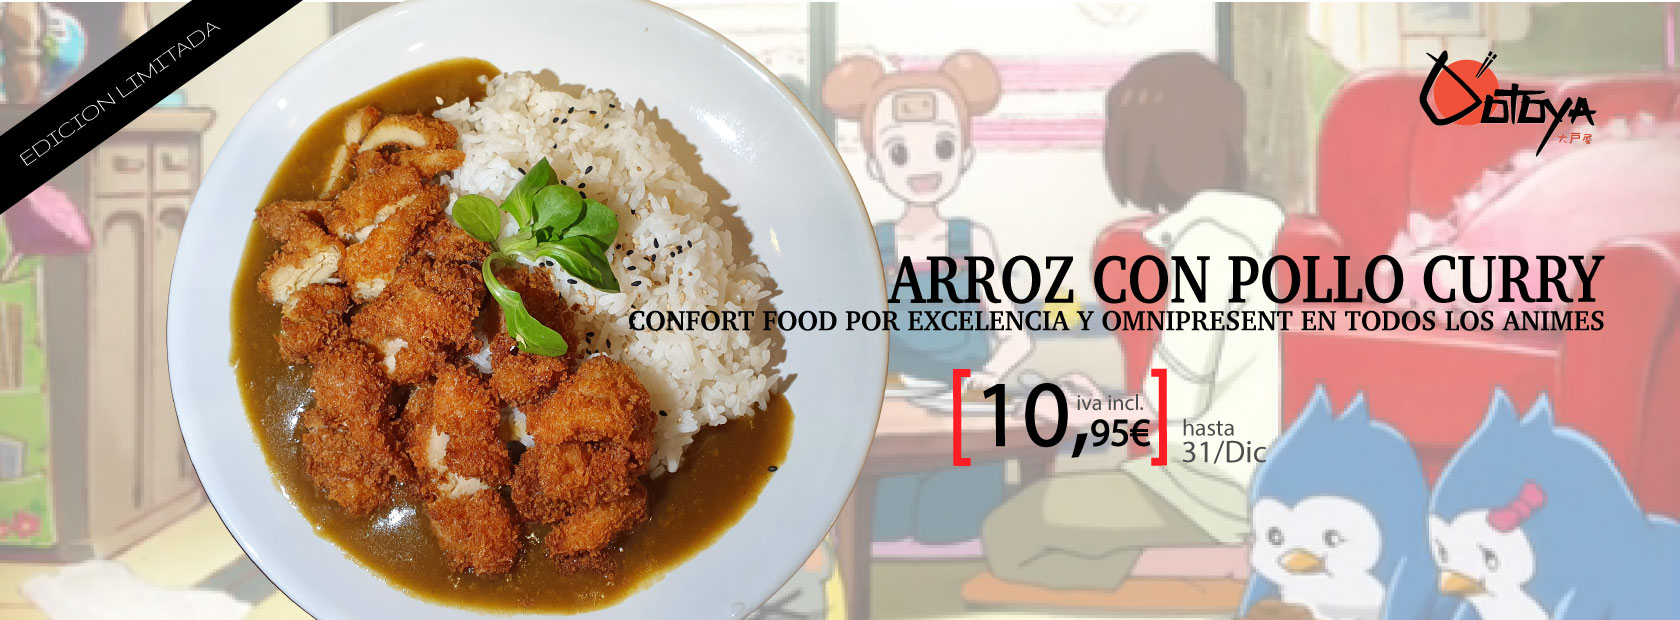 arroz_con_pollo_curry-banner